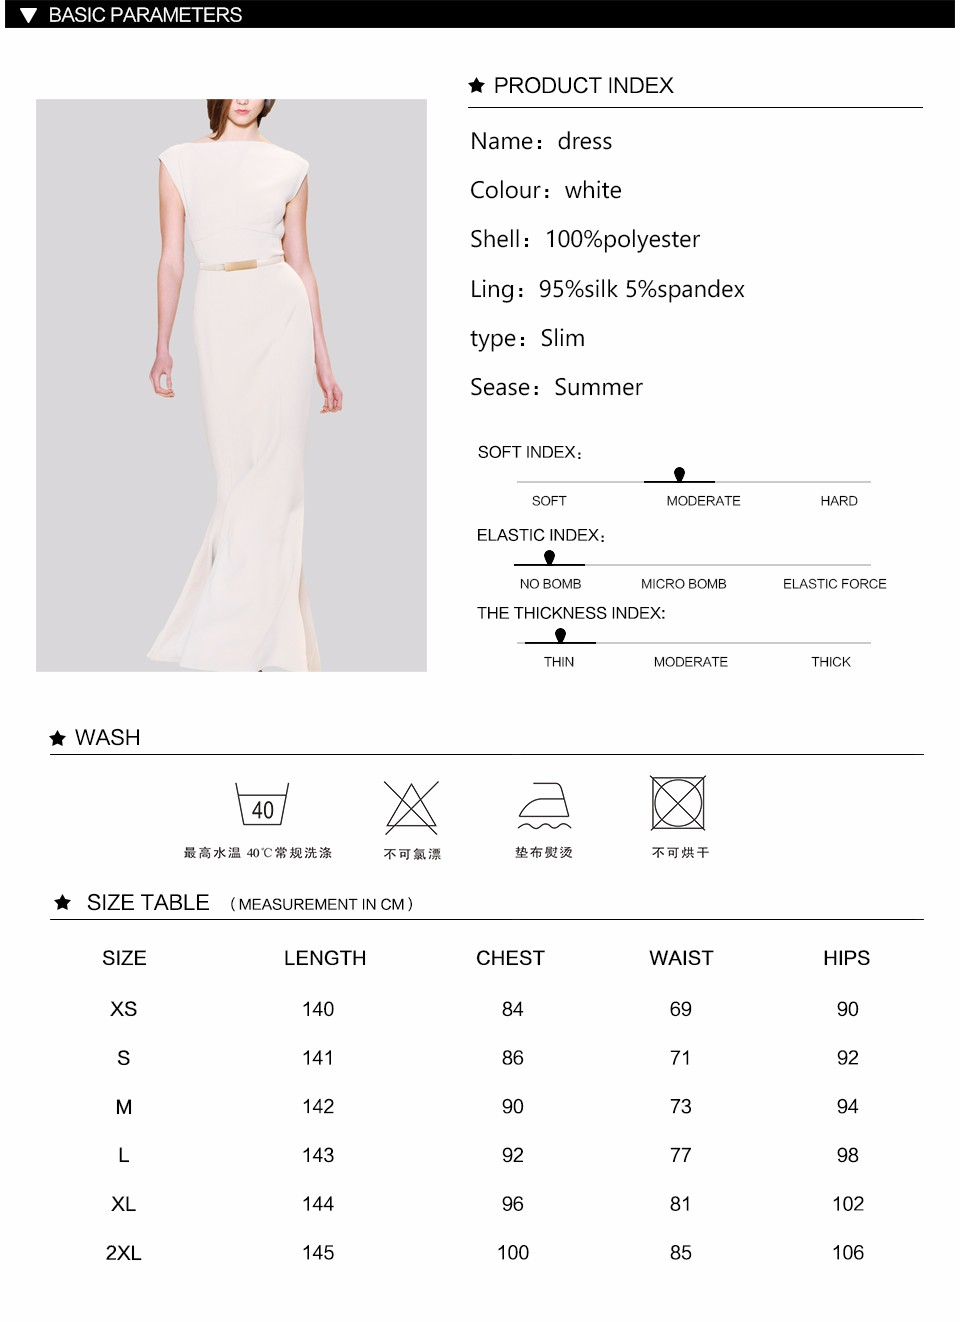 Rushed Dress Robe Size Women Dress New European Fashion F Slim Clothes Formal Summer Party Club Short Sleeved Clothing For 3